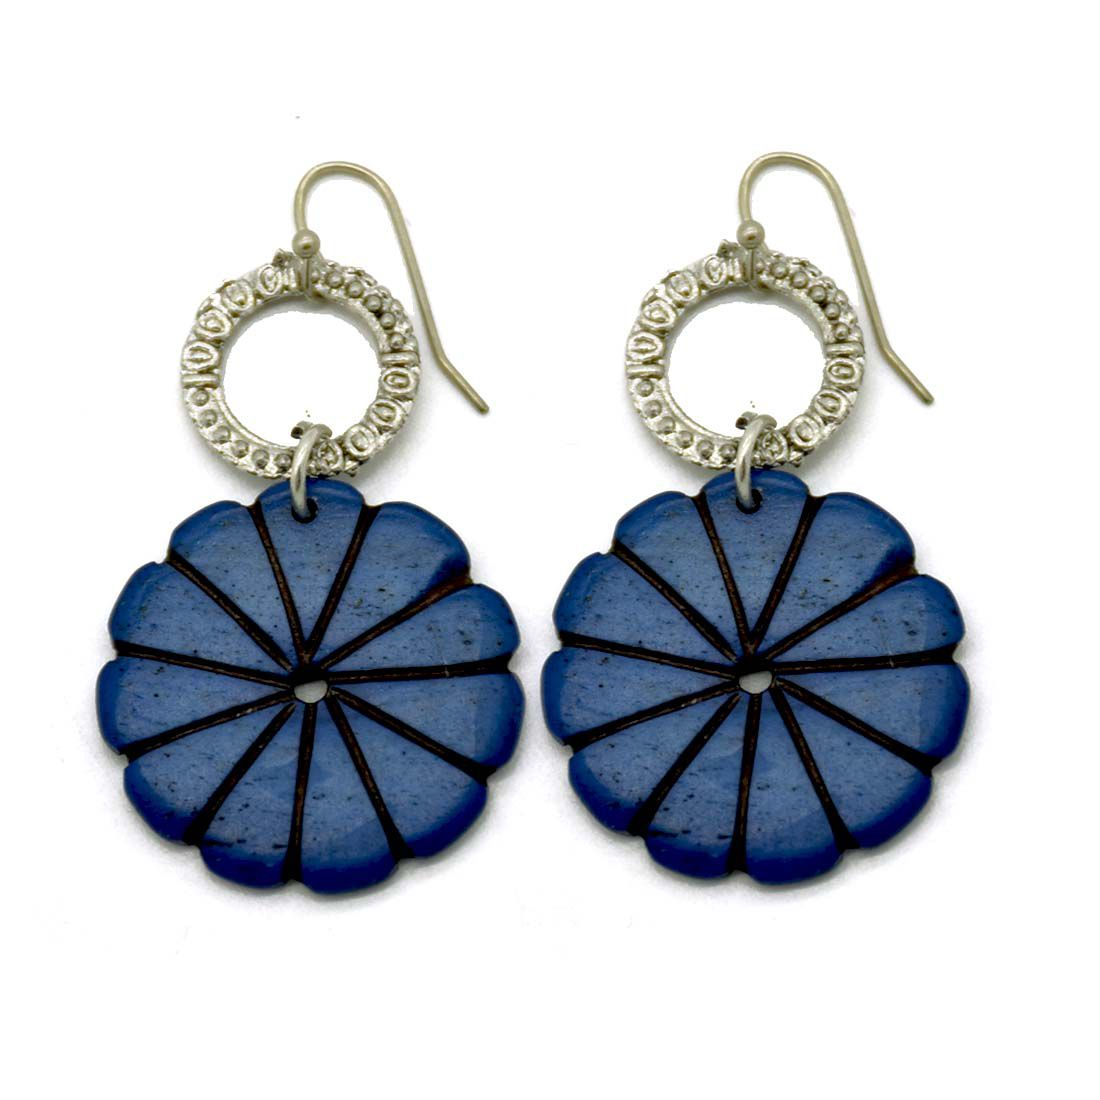 Bone Carving Blue Floral Earrings Buy Bone Carving Blue Floral Earrings Online At Best Prices In India On Snapdeal